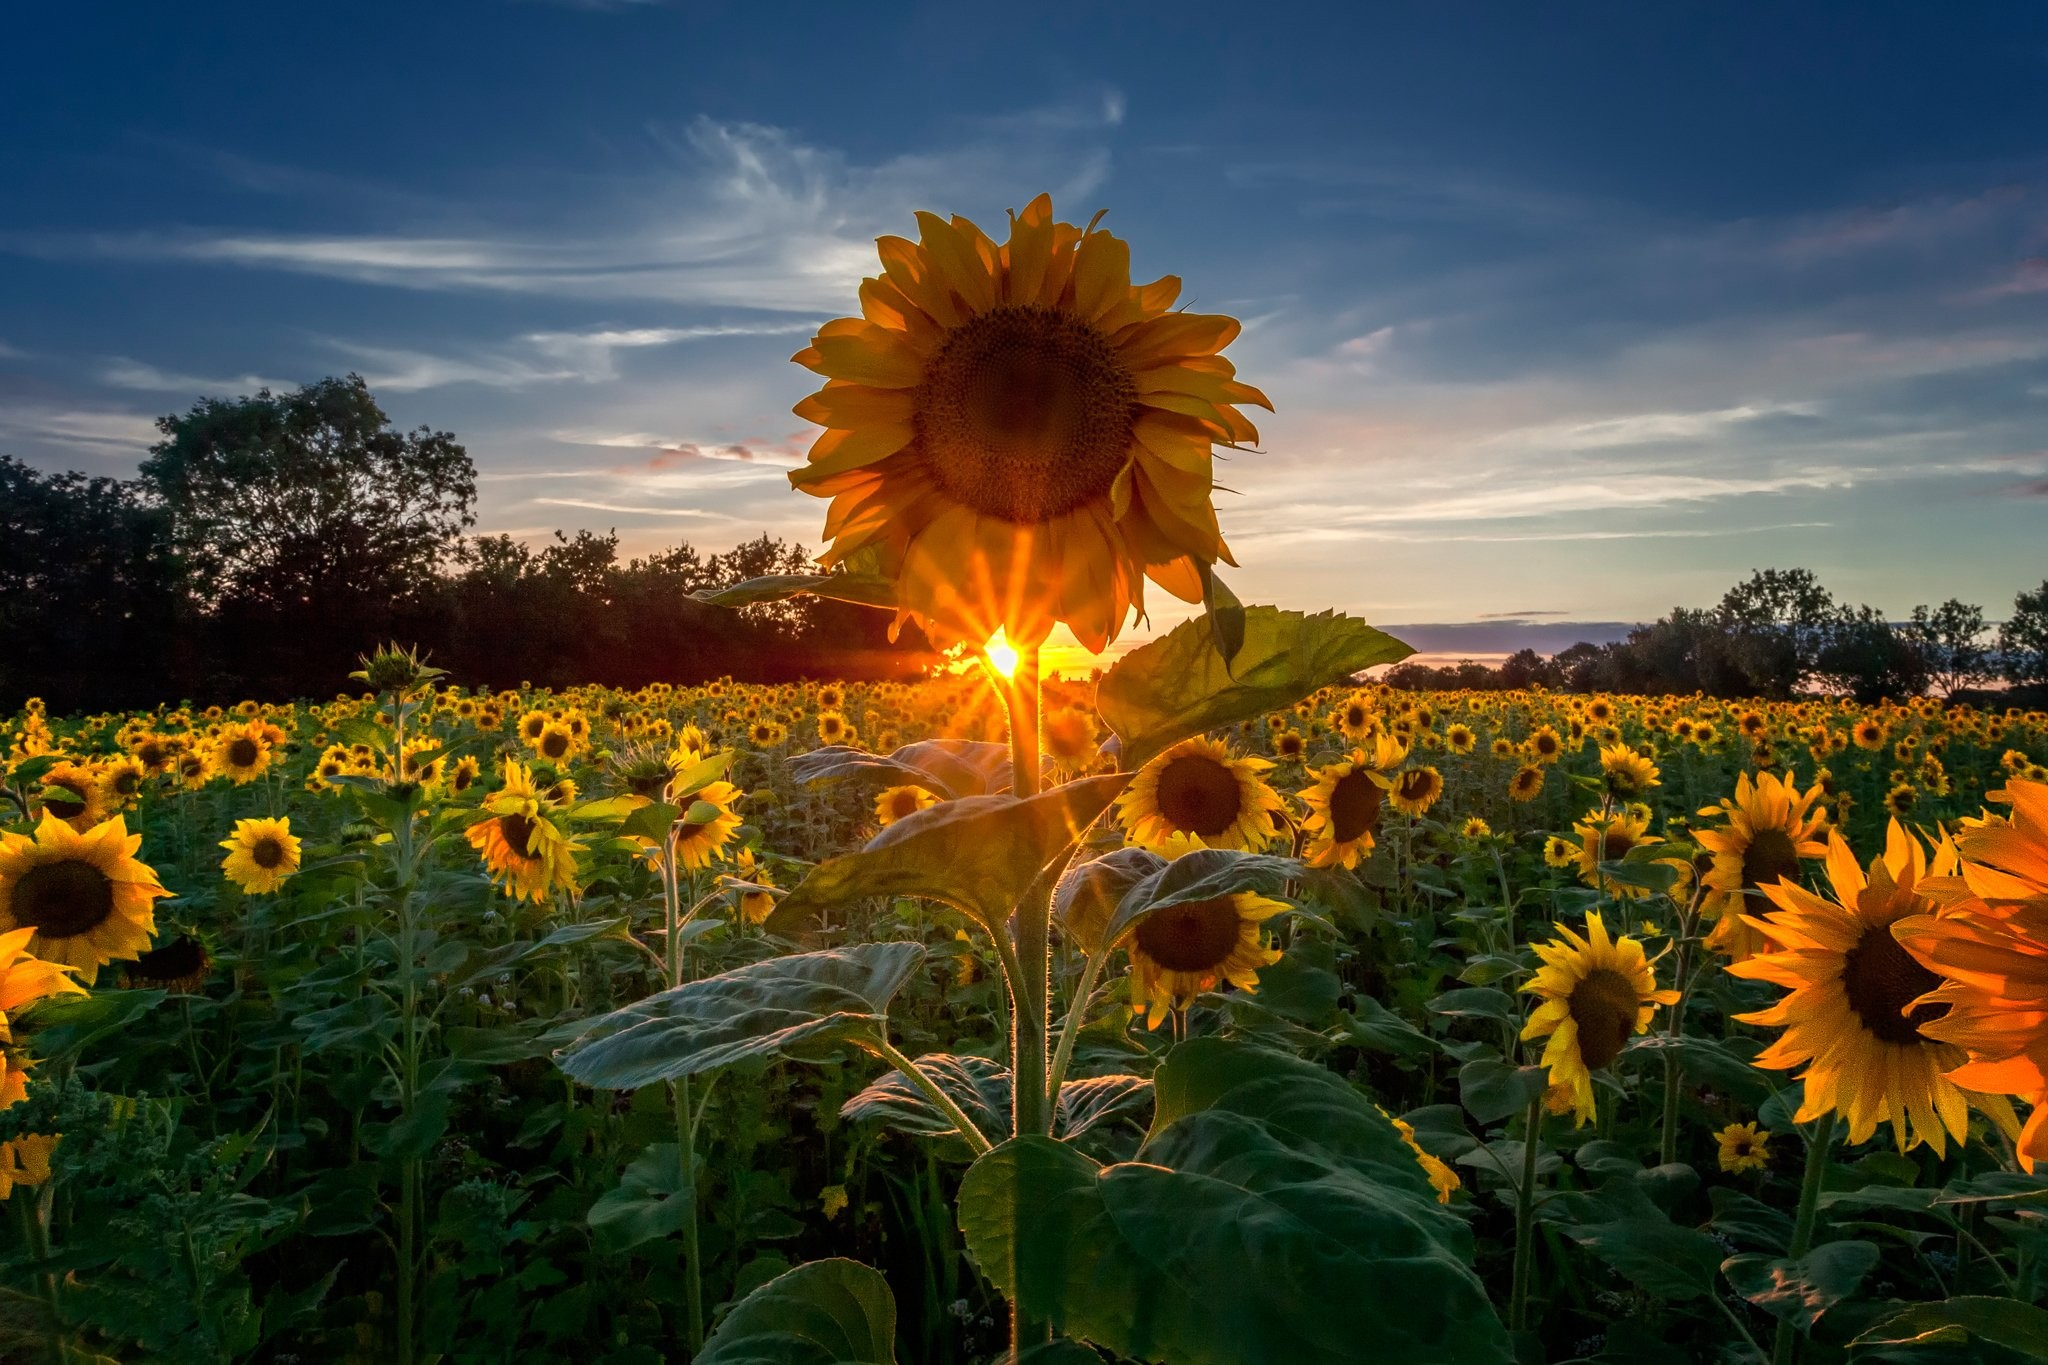 Sunflower Wallpaper Hd Desktop 2048x1365 Wallpaper Teahub Io